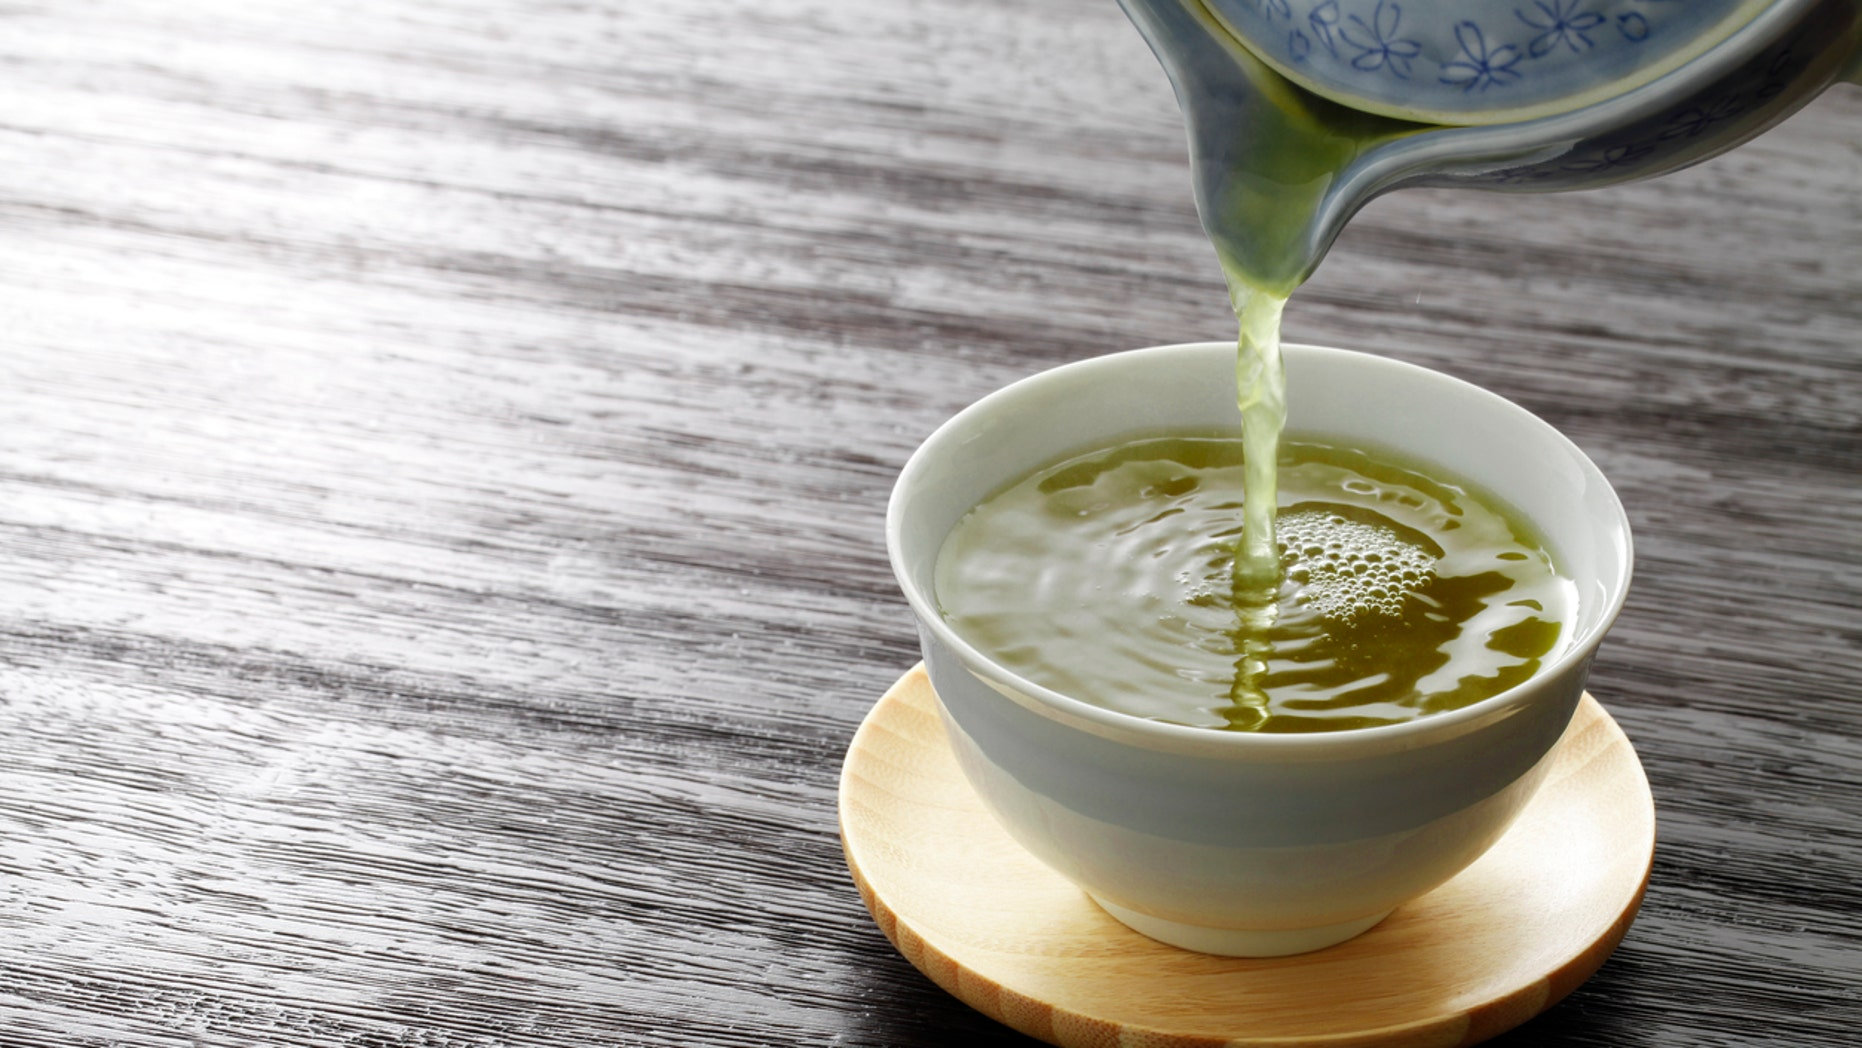 According to a new study, green tea contains a molecule that could help prevent the buildup of plaque in the arteries.